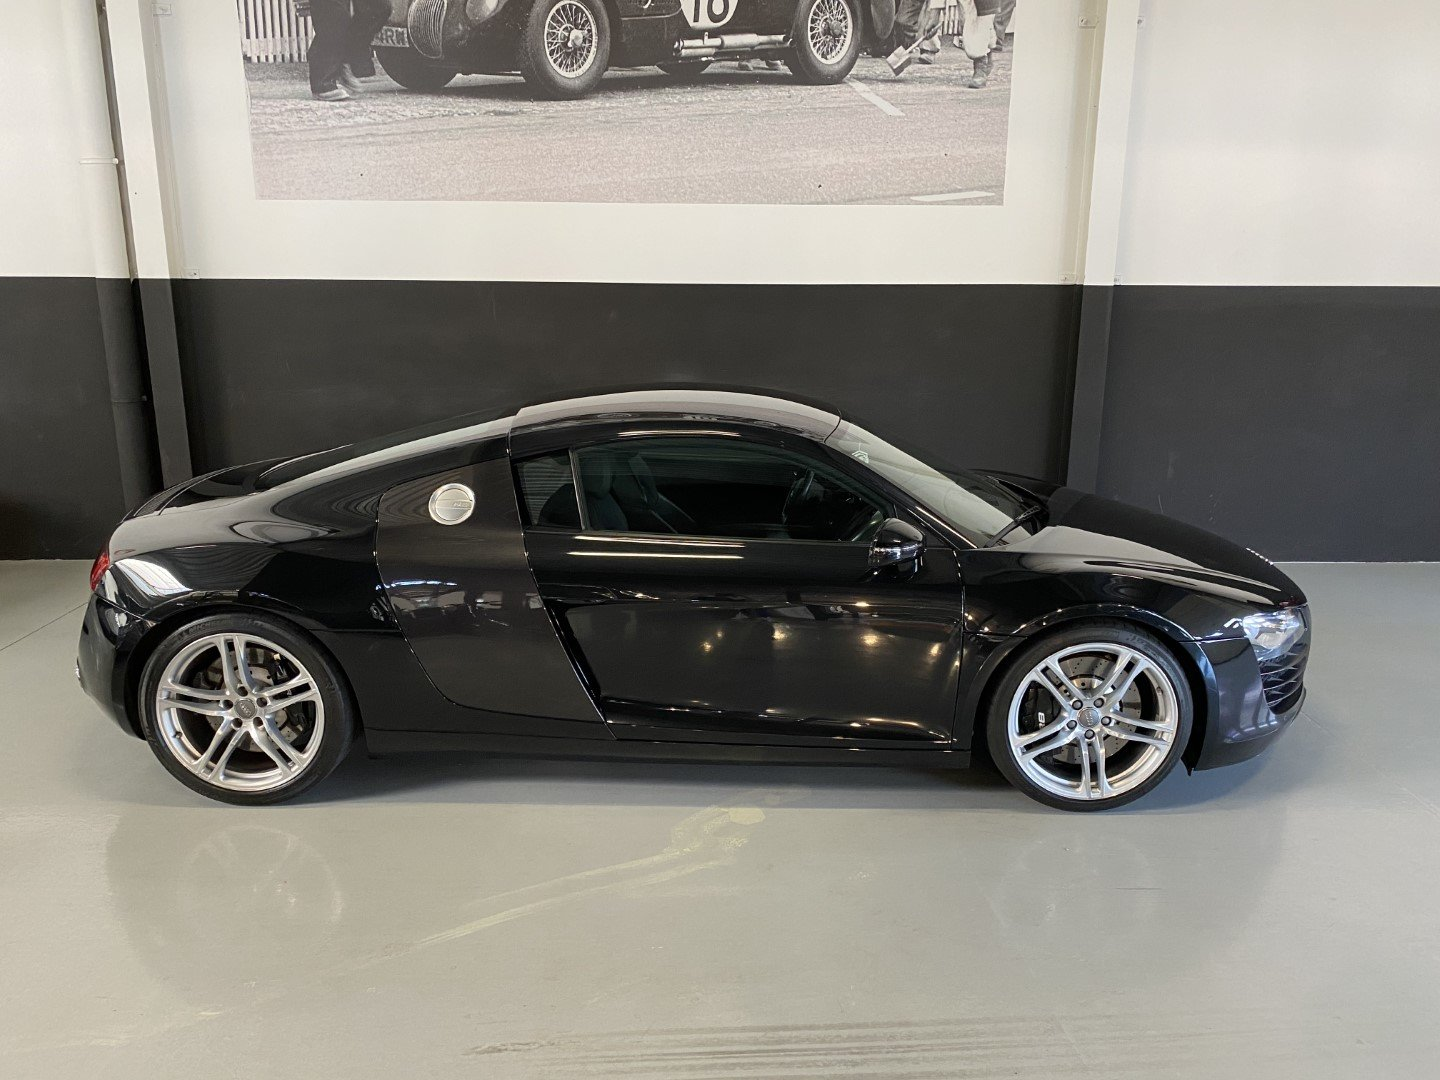 AUDI R8 4.2i V8 Quattro FSI Low mileage (2008) For Sale (picture 3 of 12)